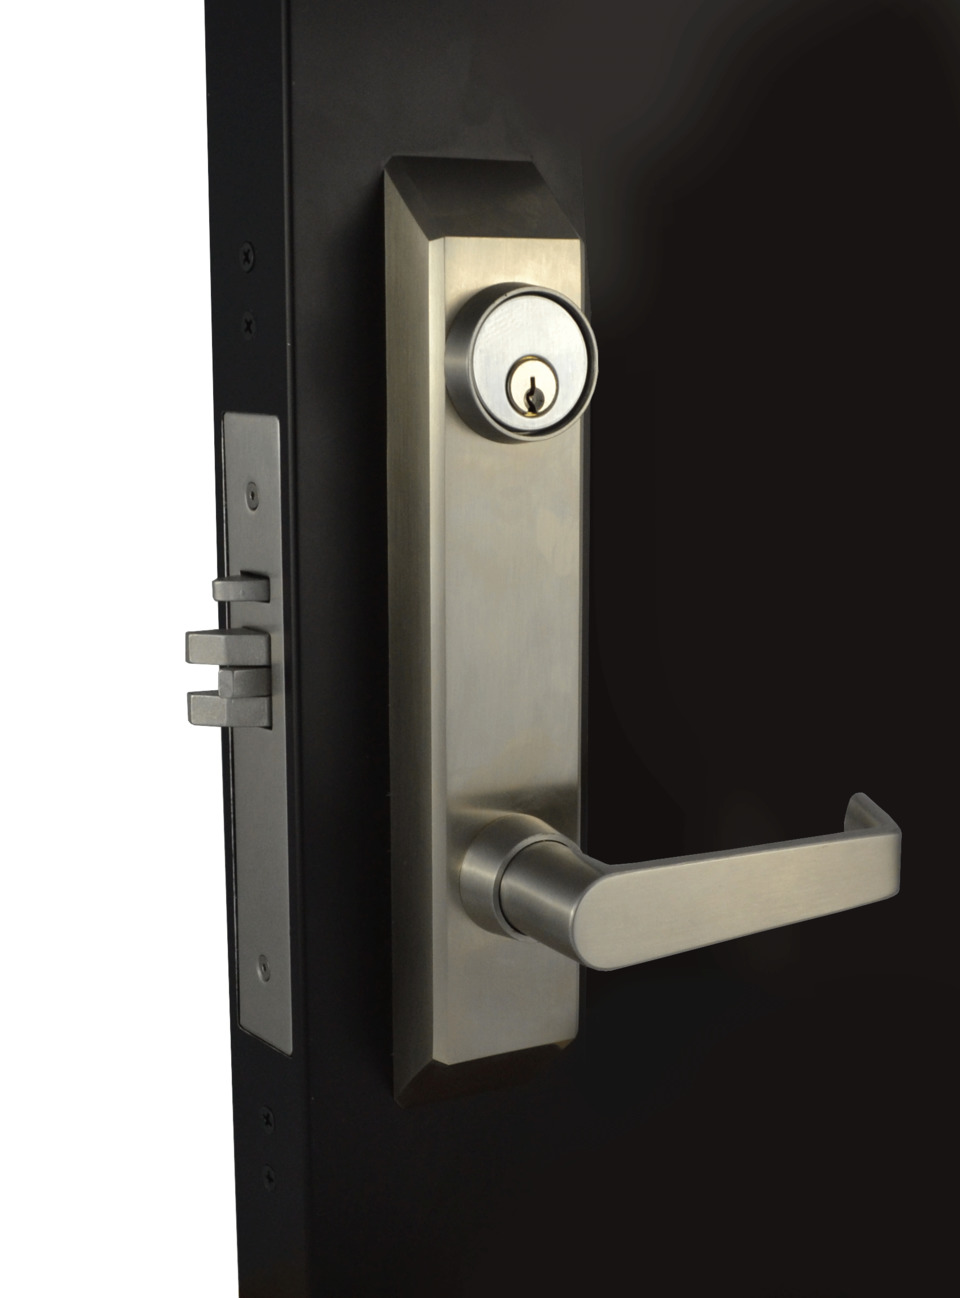 Choose The Correct Access Control System For The Job